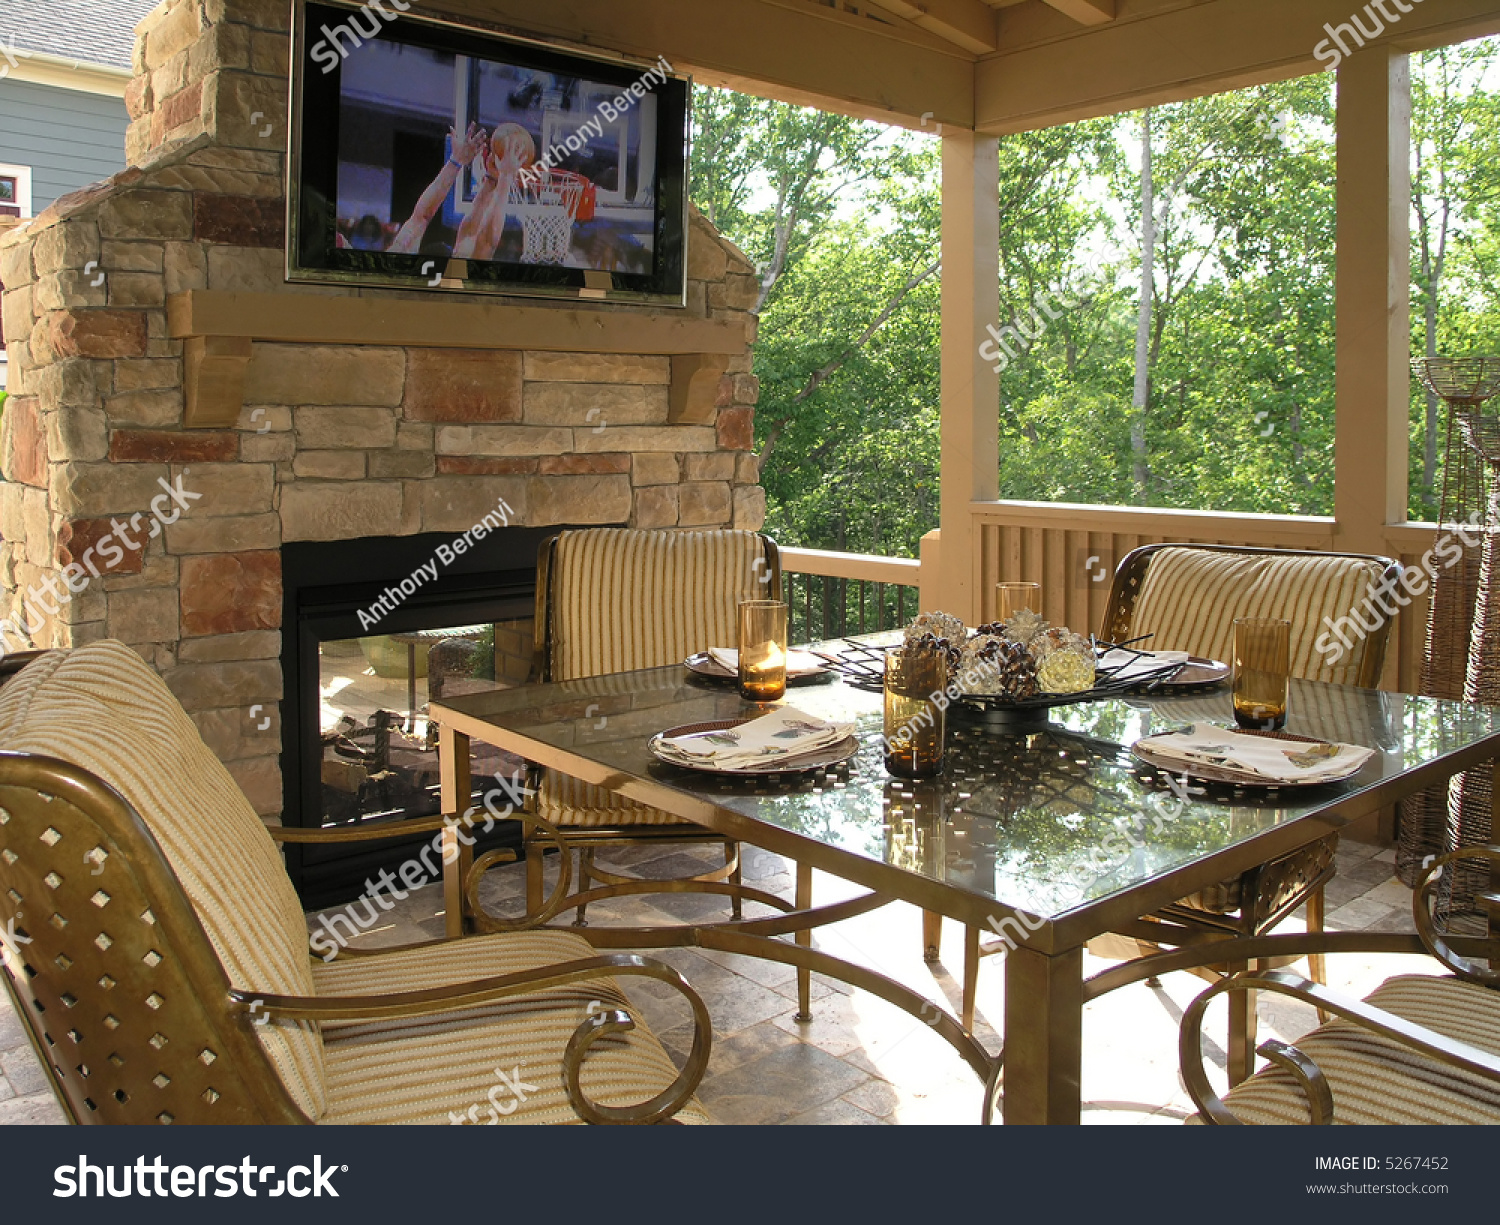 Luxury House With Regal Elegant Covered Outdoor Patio Stock Photo 5267452 : Shutterstock